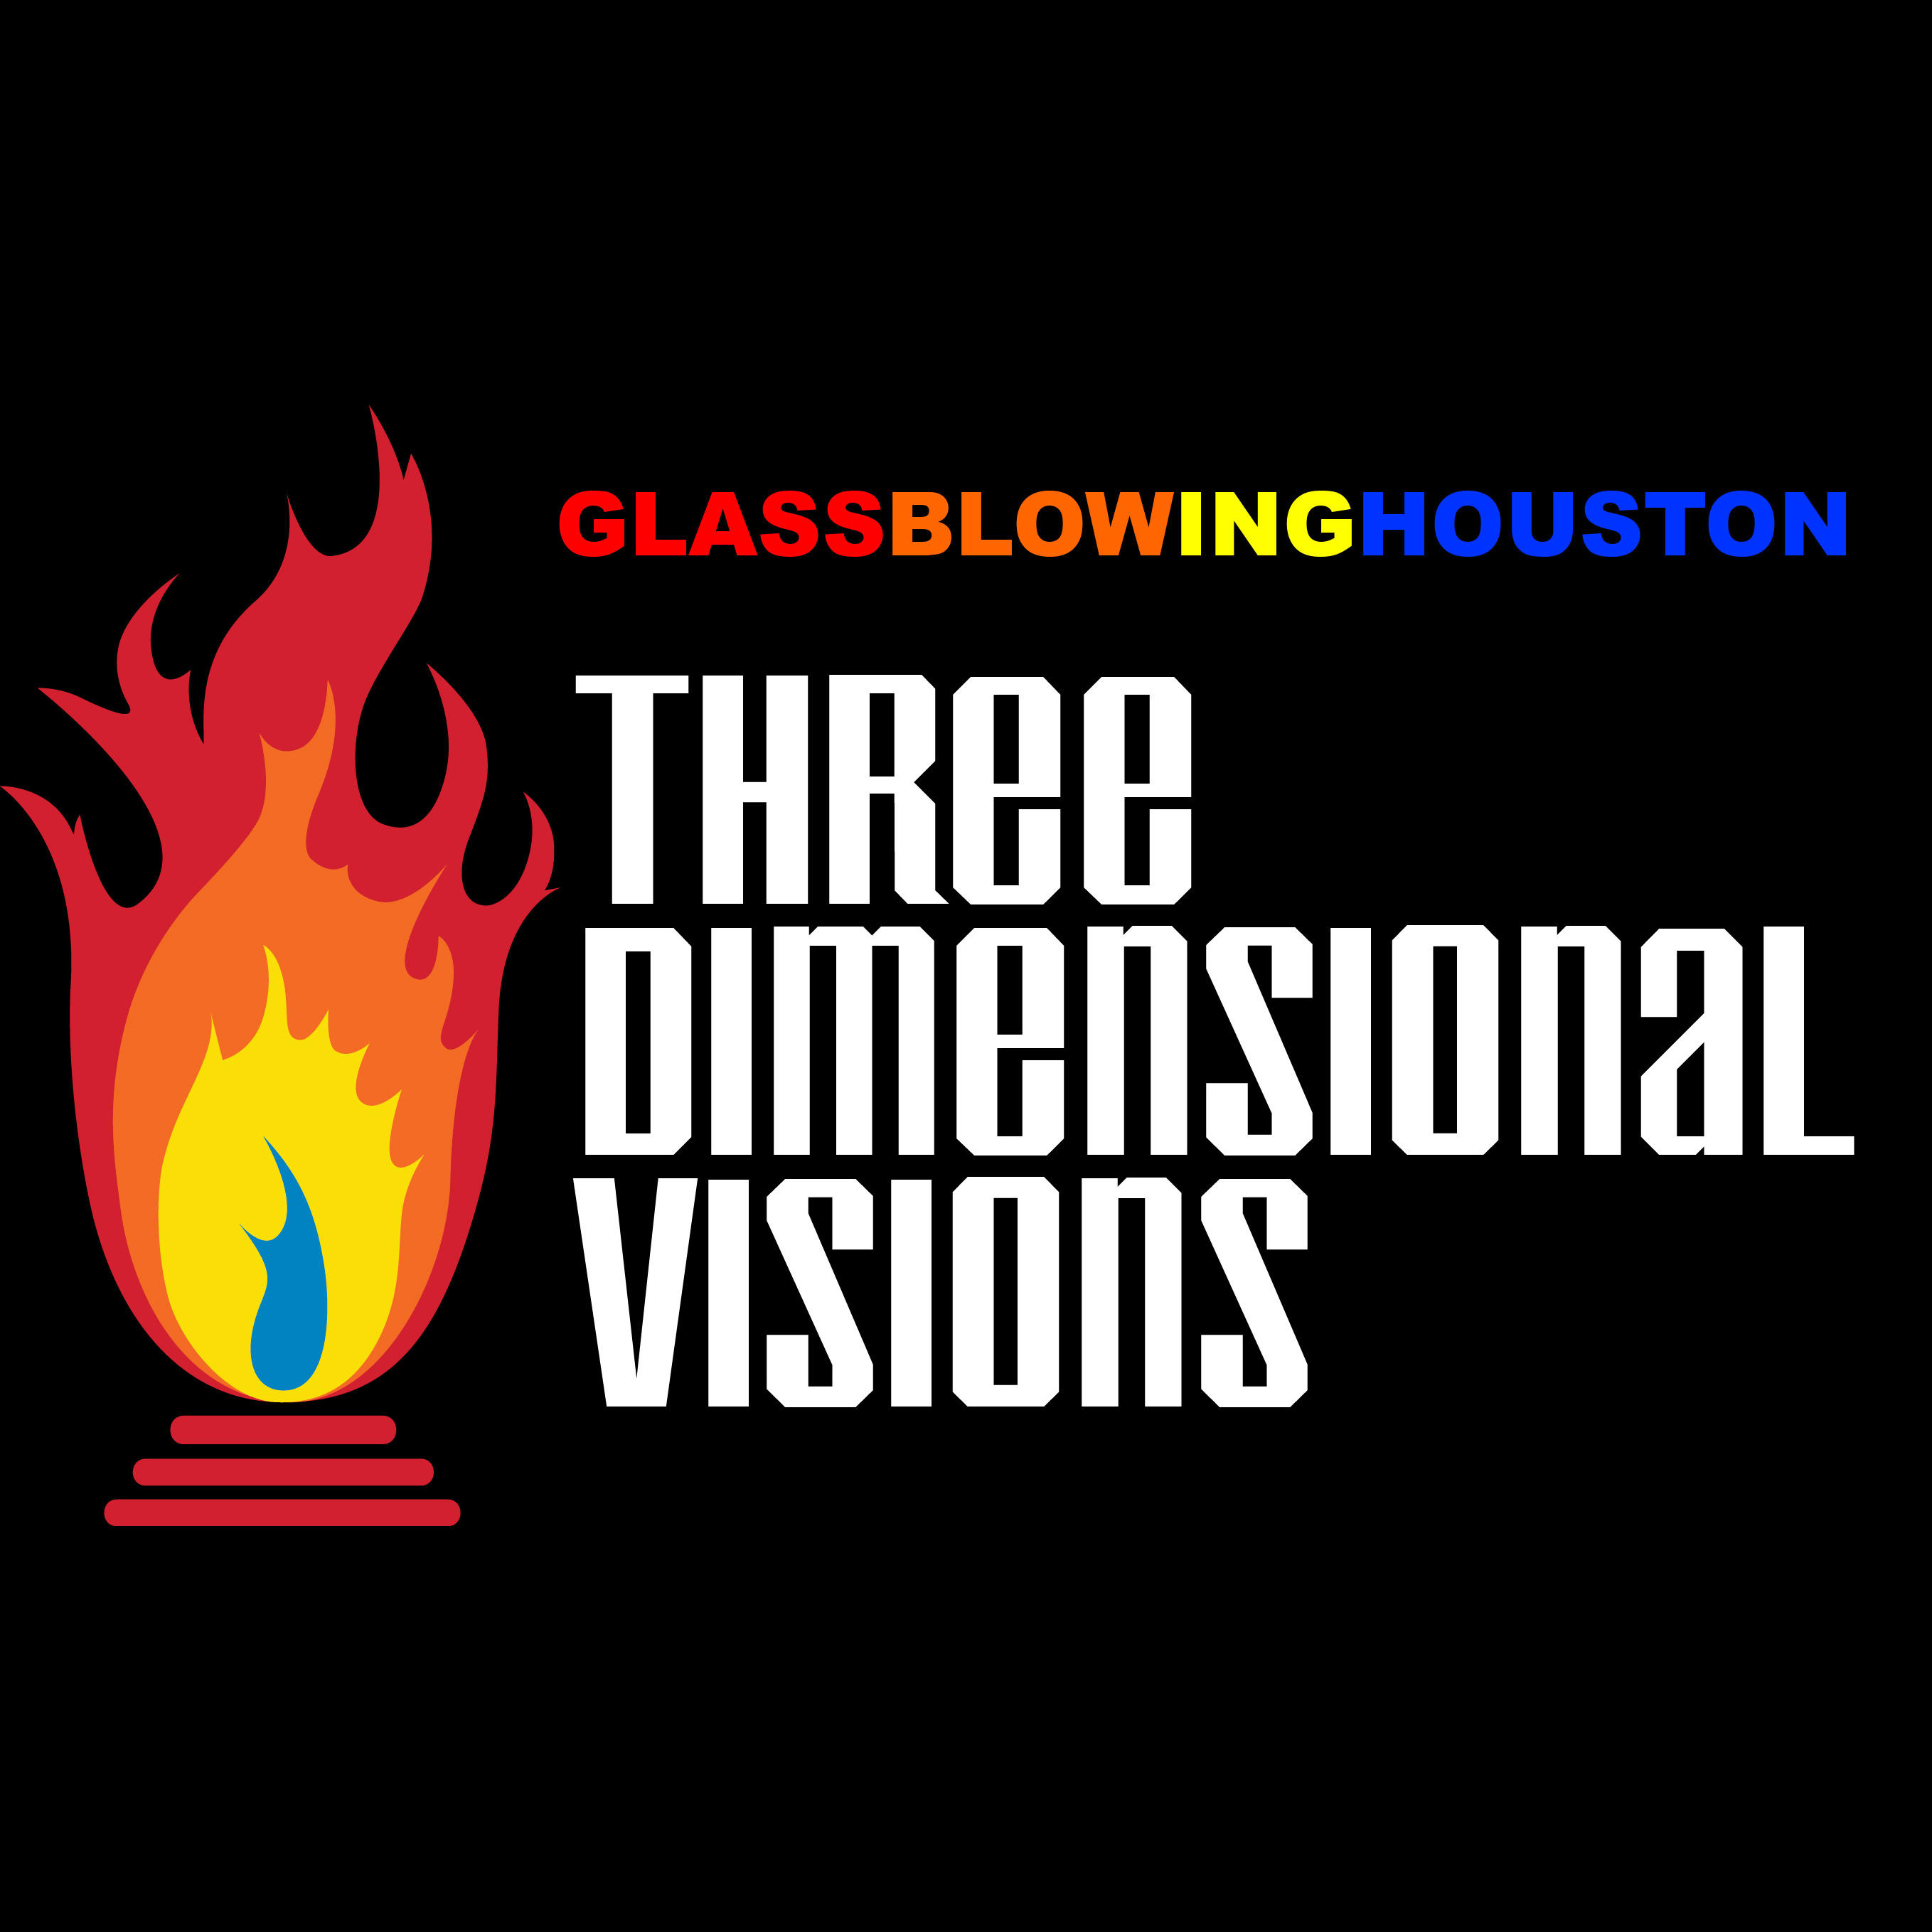 Three Dimensional Visions - Glass Blowing Houston image 15